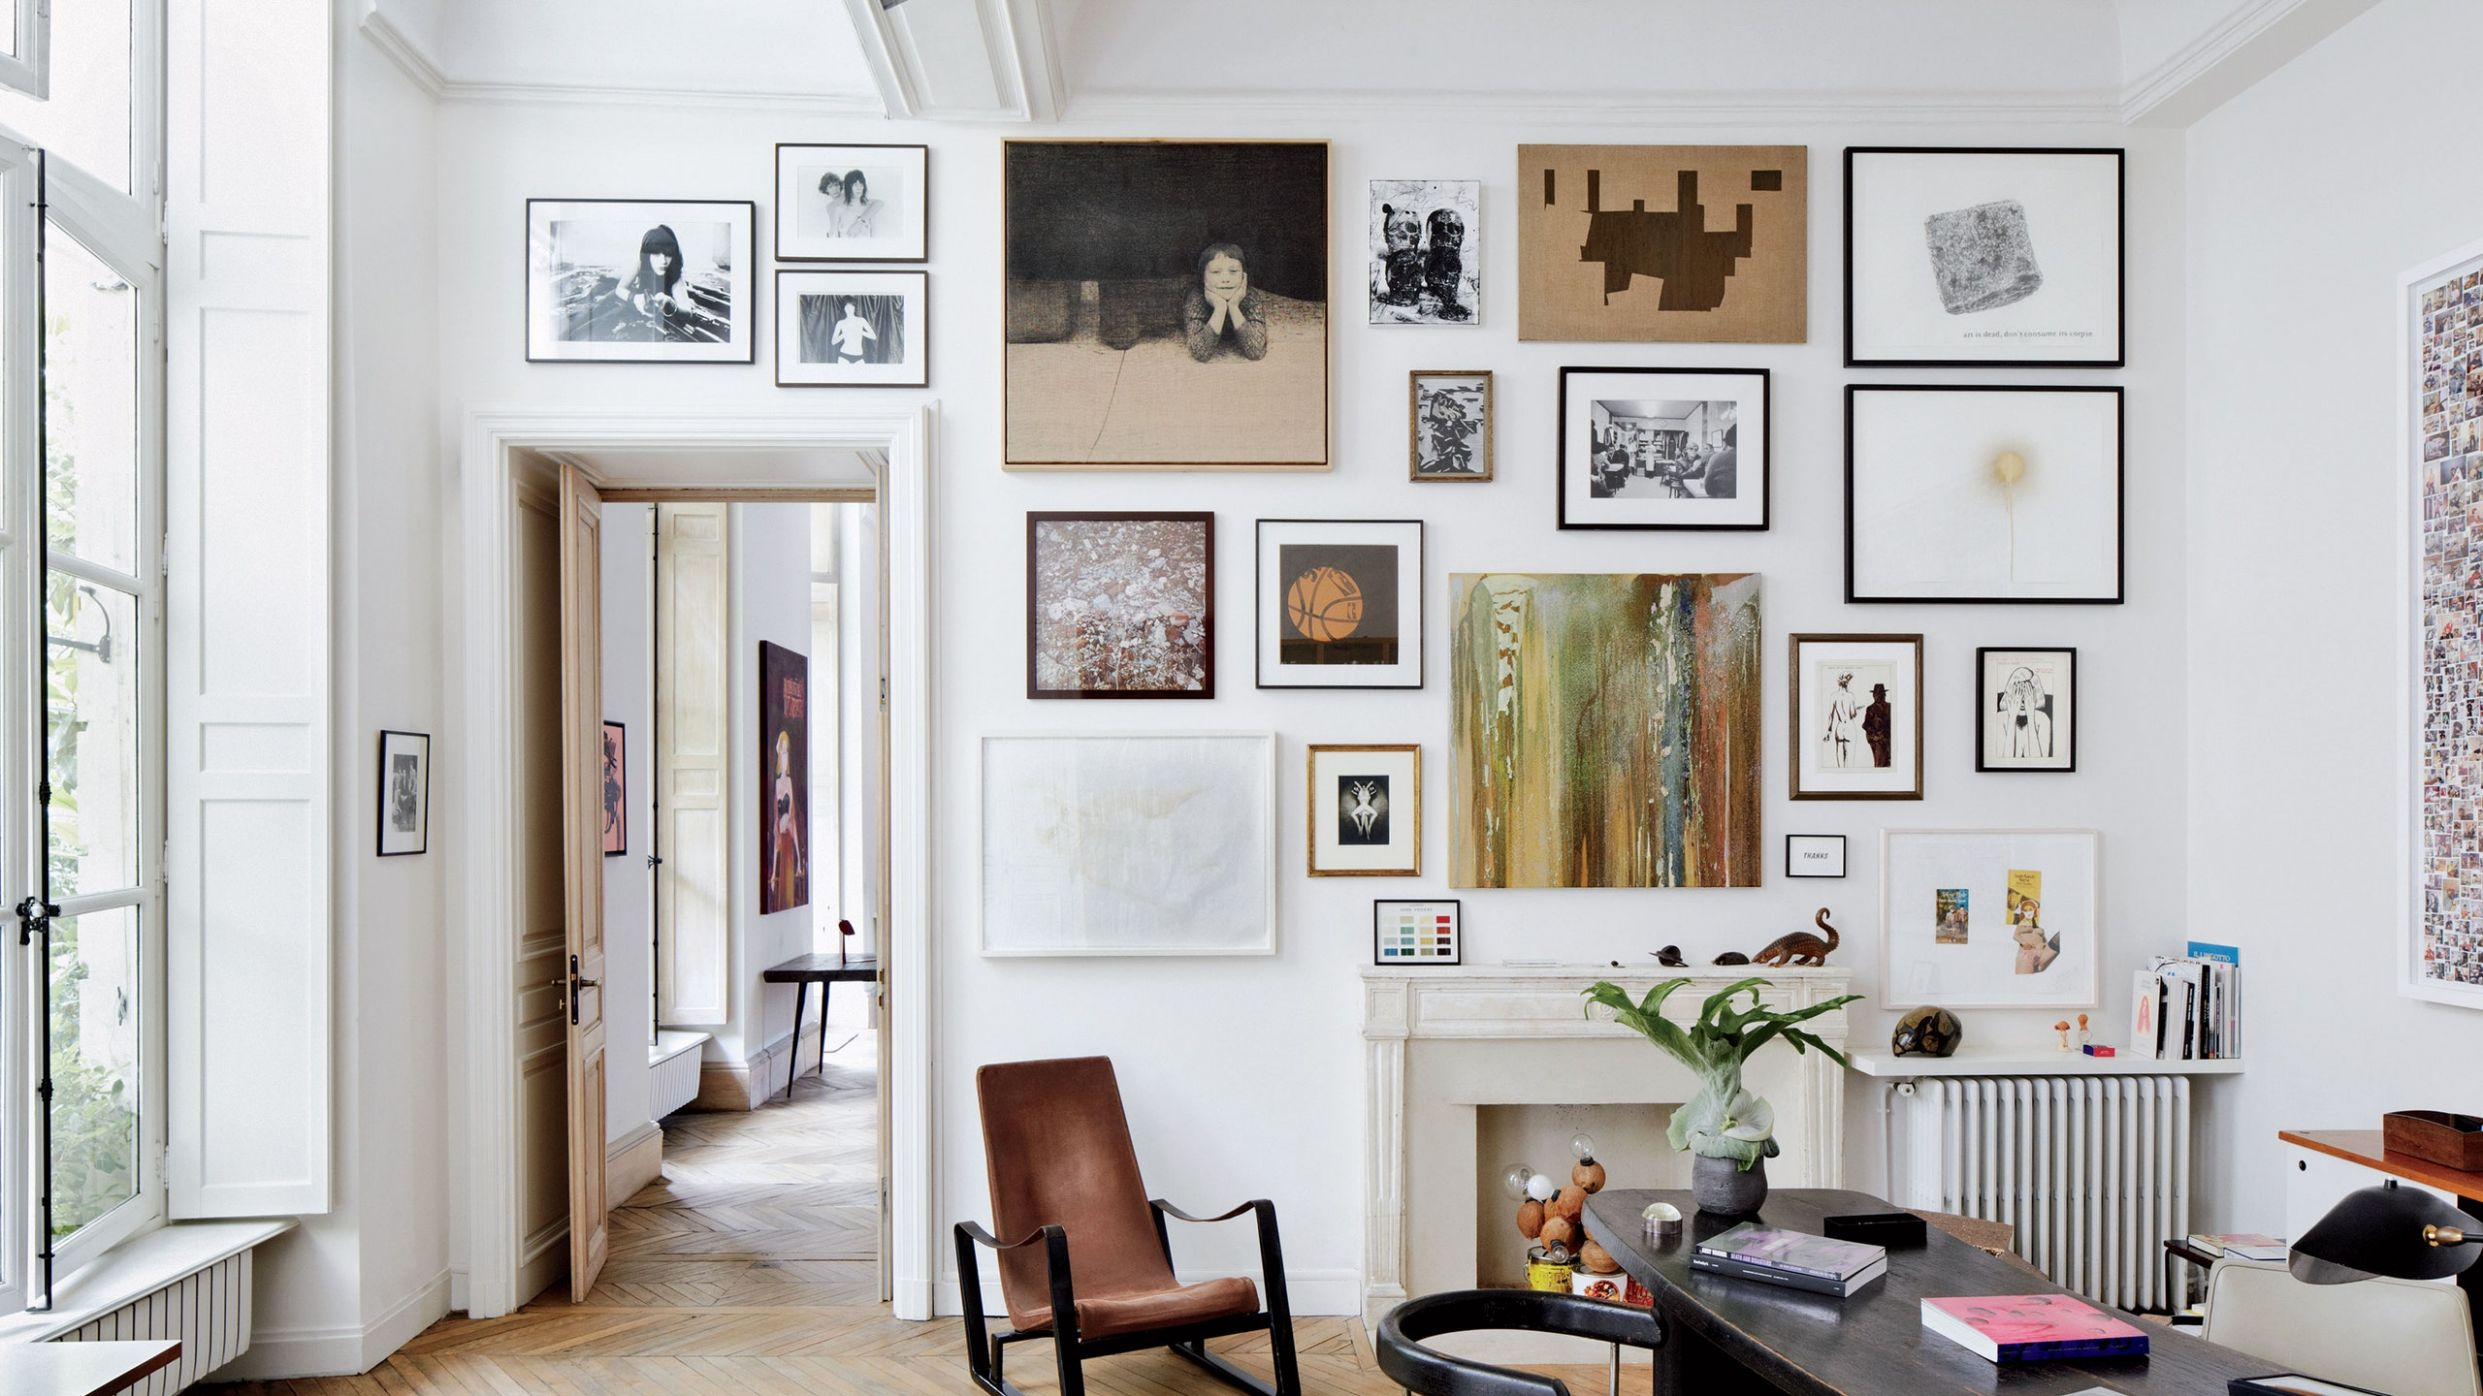 9 Wall Decor Ideas to Refresh Your Space | Architectural Digest